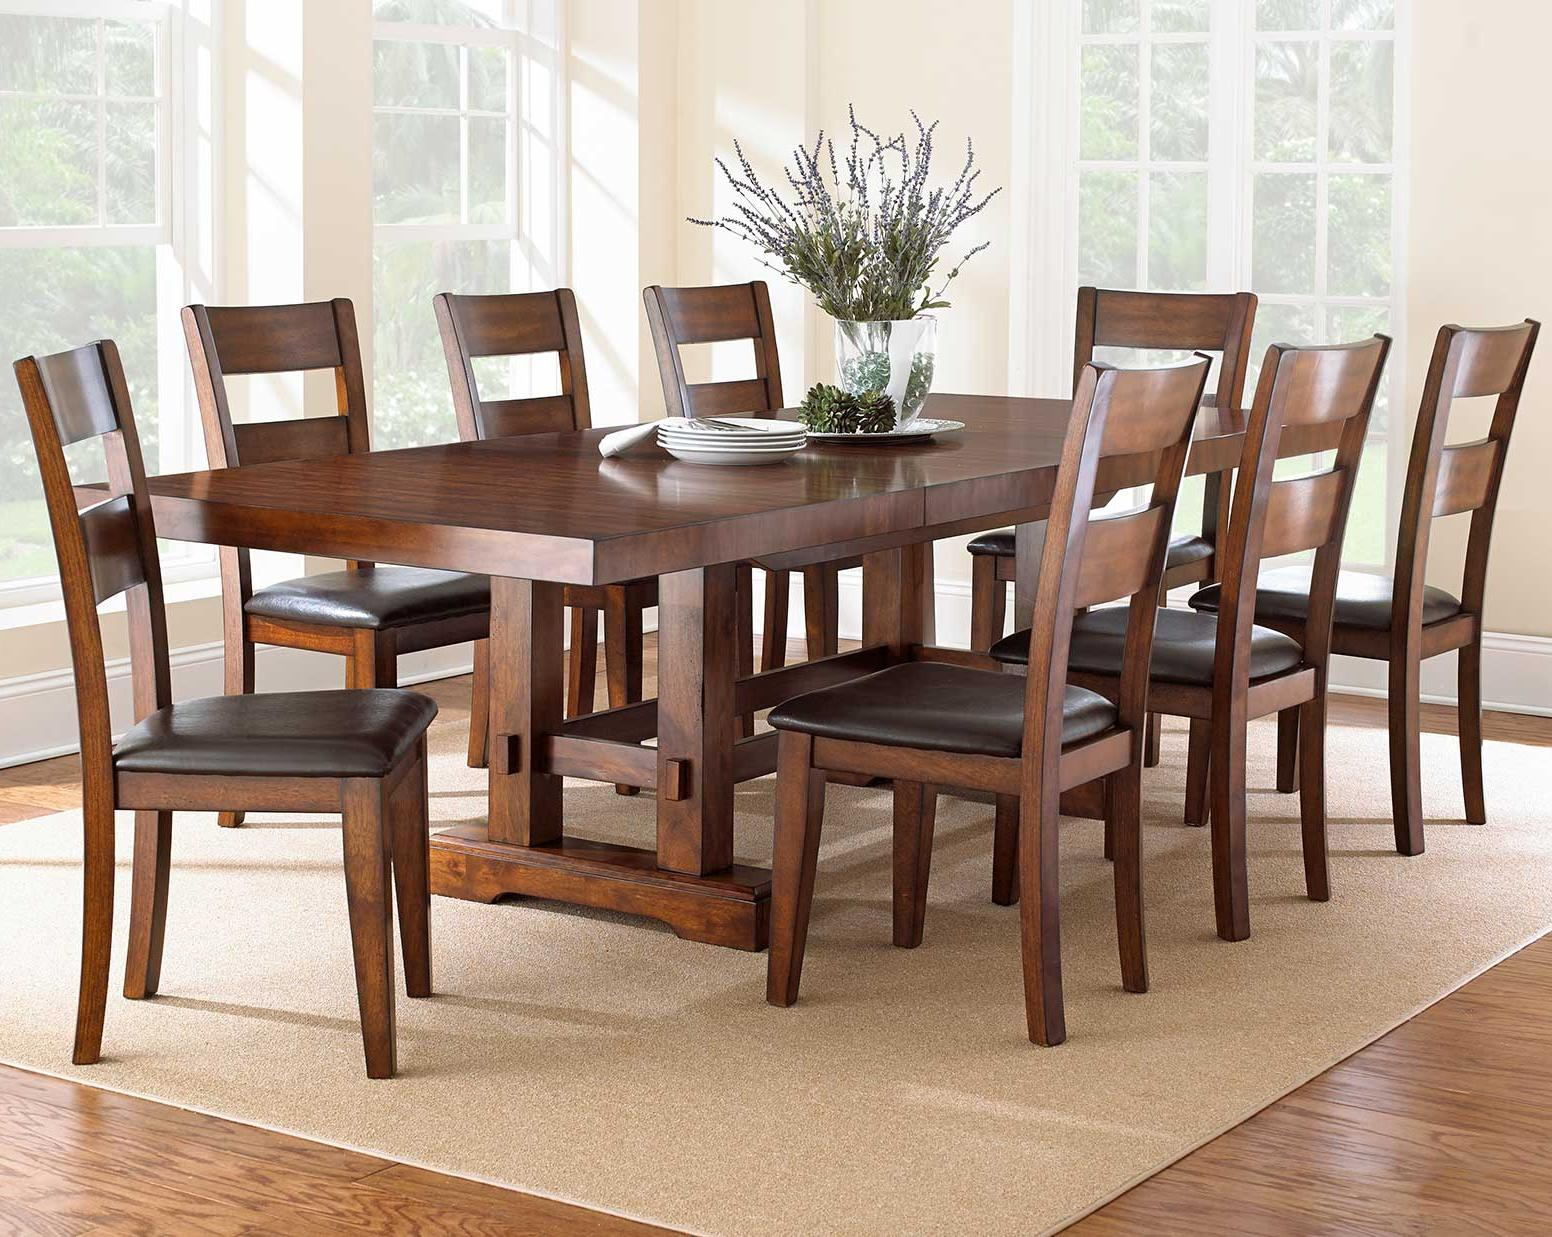 Steve silver zappa piece dining set northeast factory